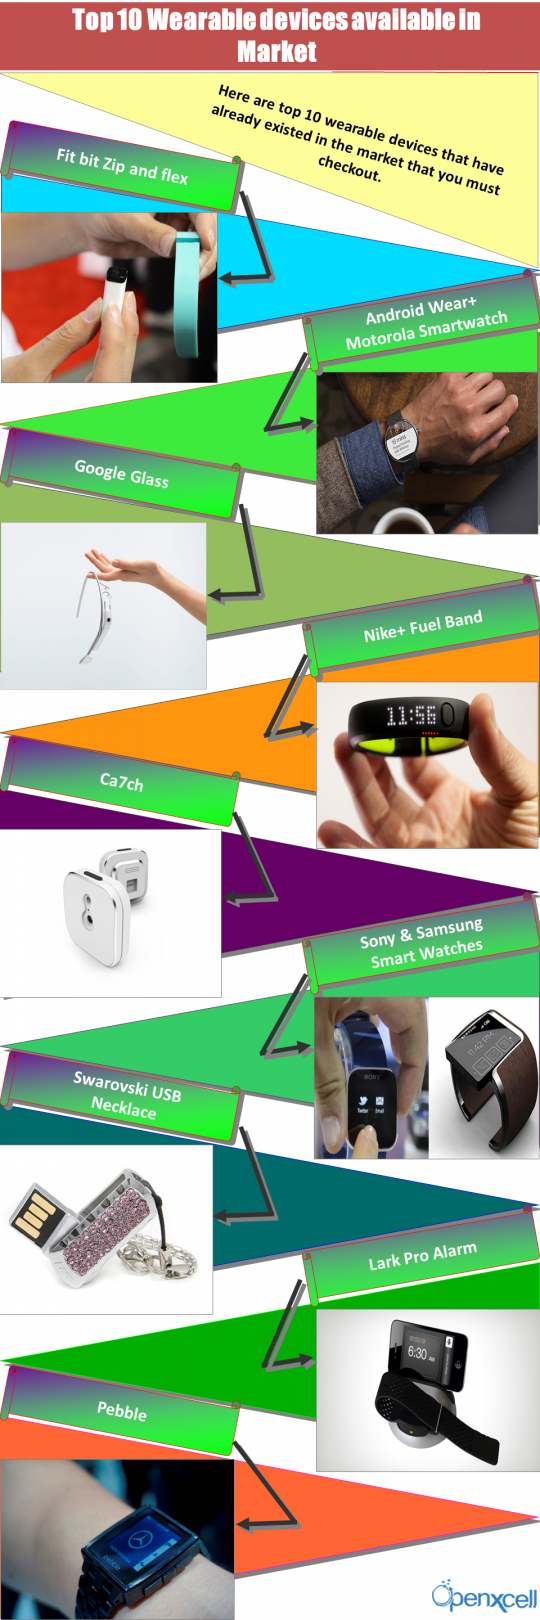 Top 10 Wearable devices available in Market